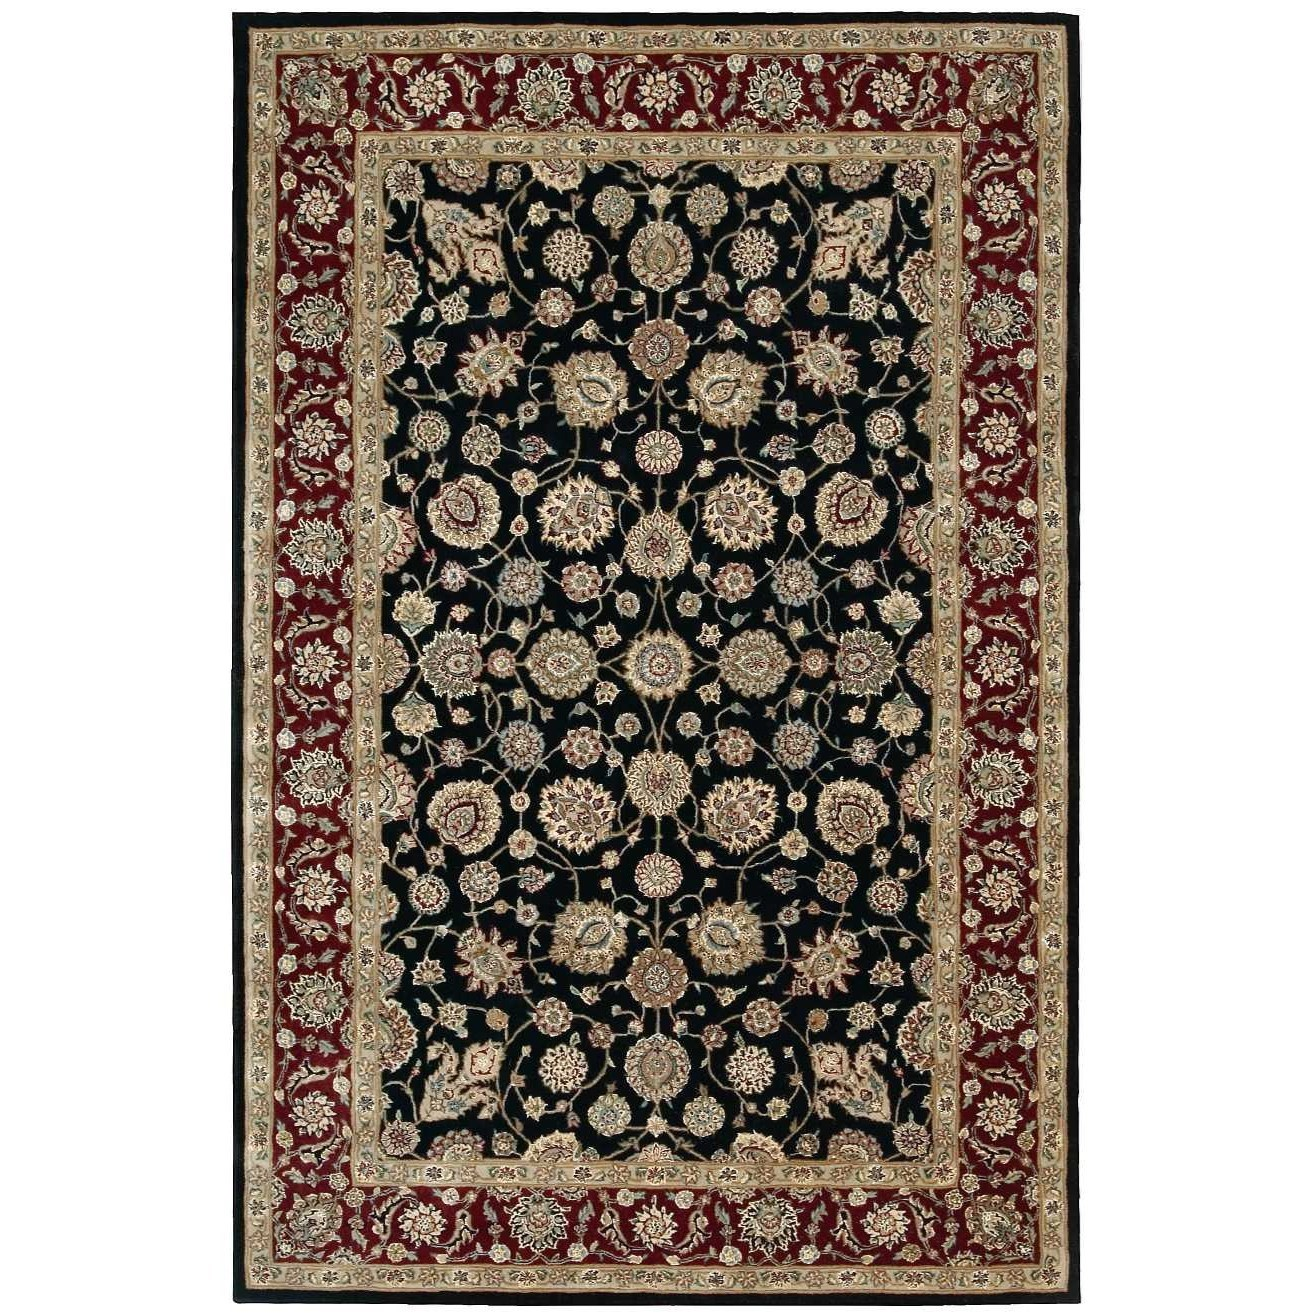 "Nourison 2000 5'6"" x 8'6"" Black Rectangle Rug by Nourison at Sprintz Furniture"